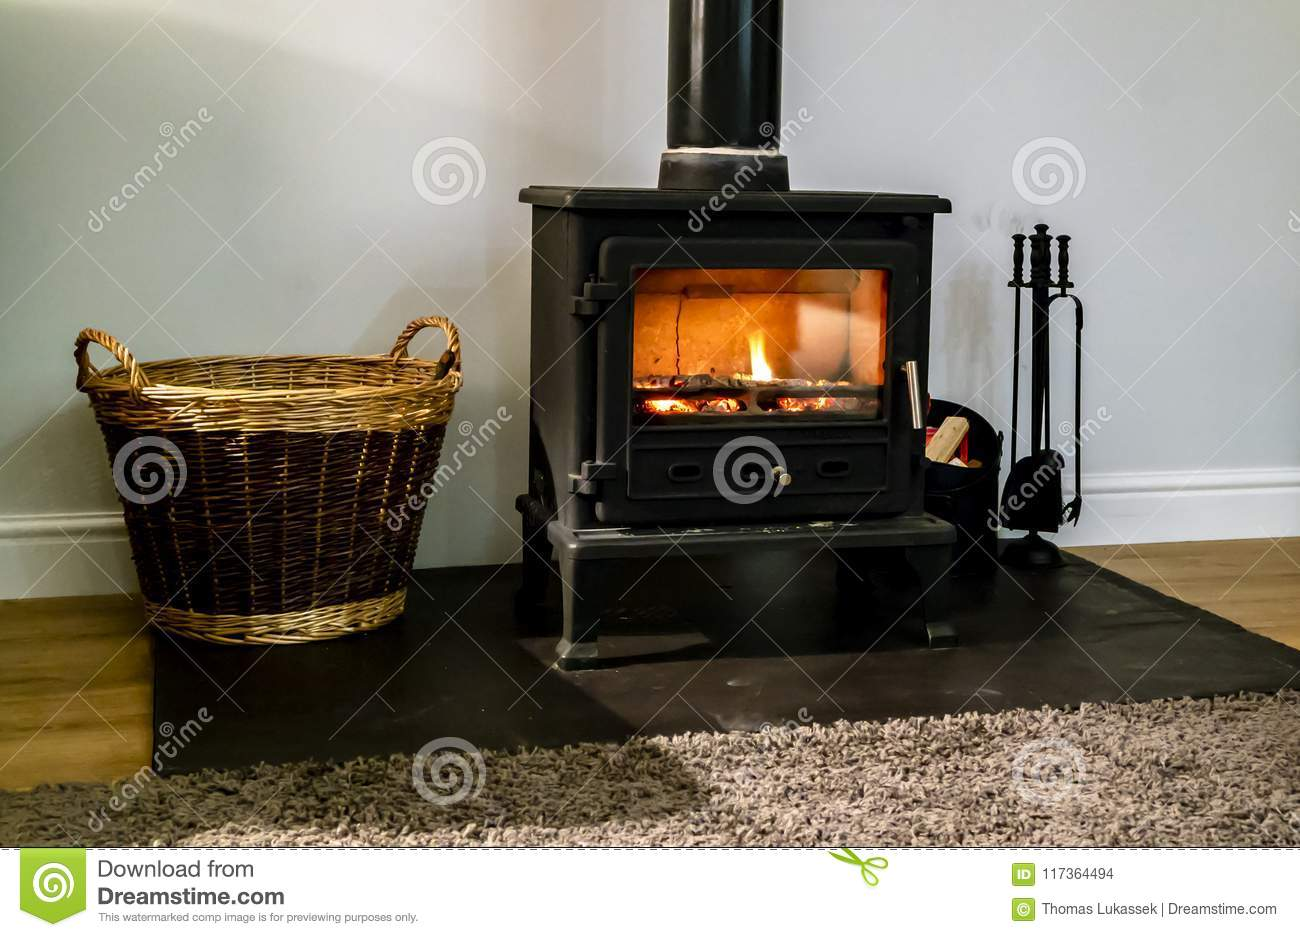 Wood Burning Fireplace With Glass Door Stock Photo Image Of Door